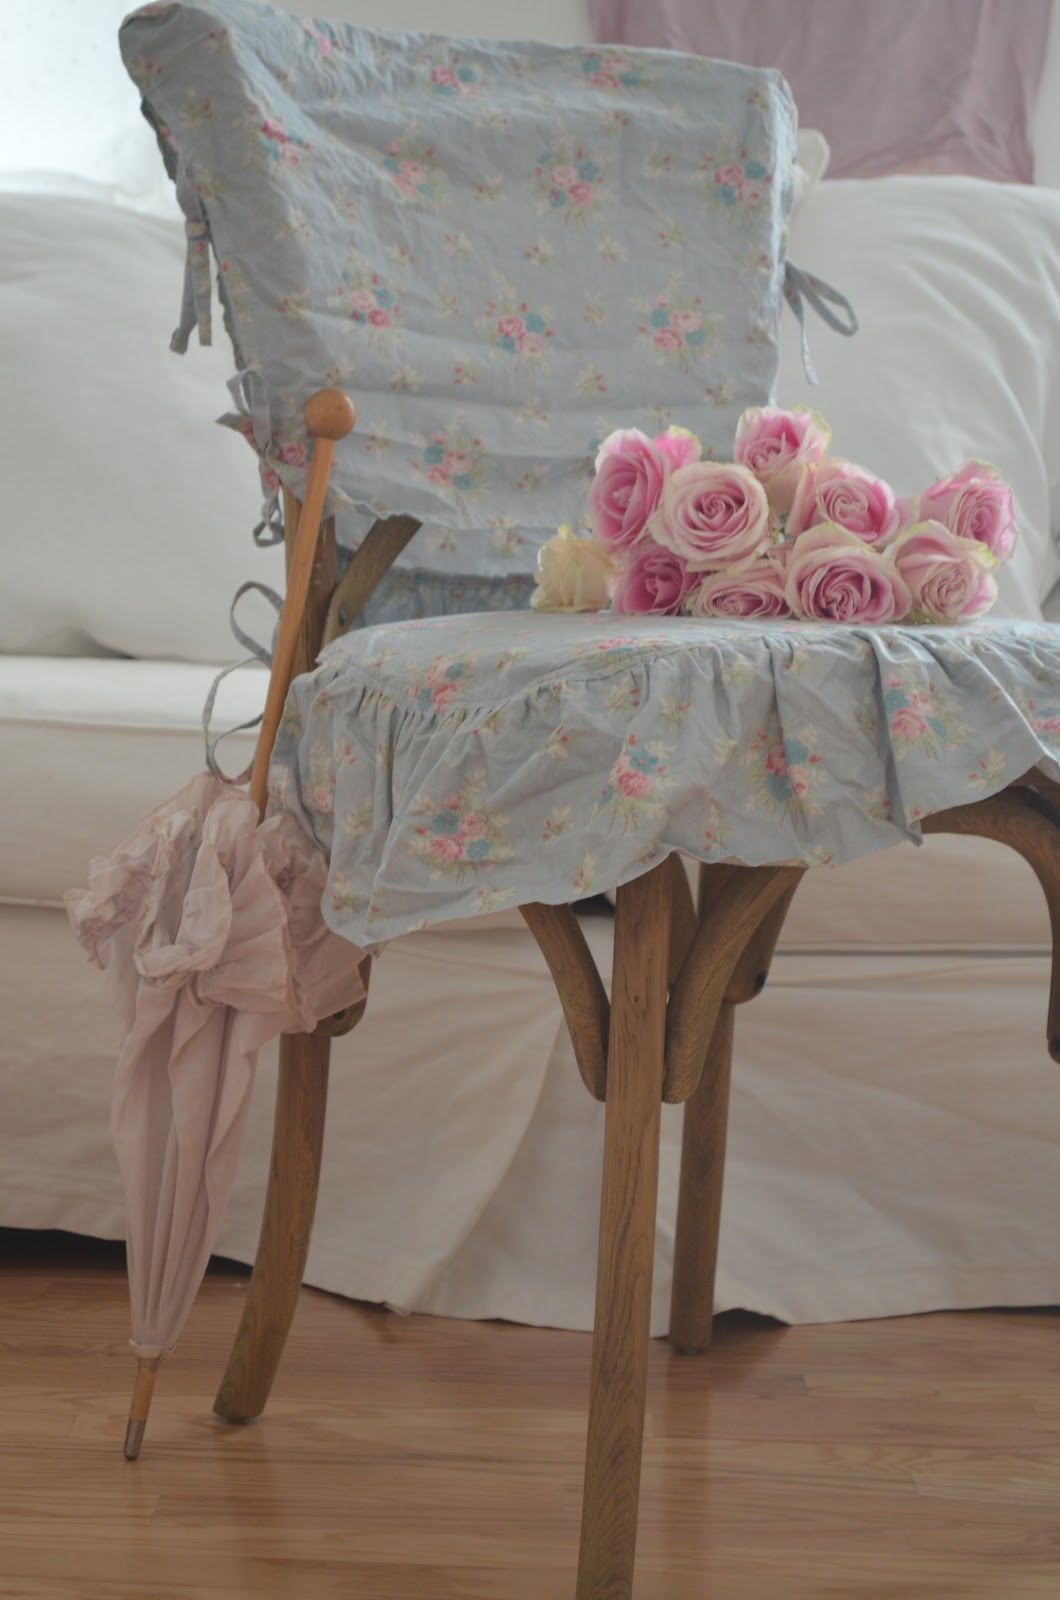 baby blue chair covers fisher price kids table and chairs simply me i ordered it the petticoat bedding in pink